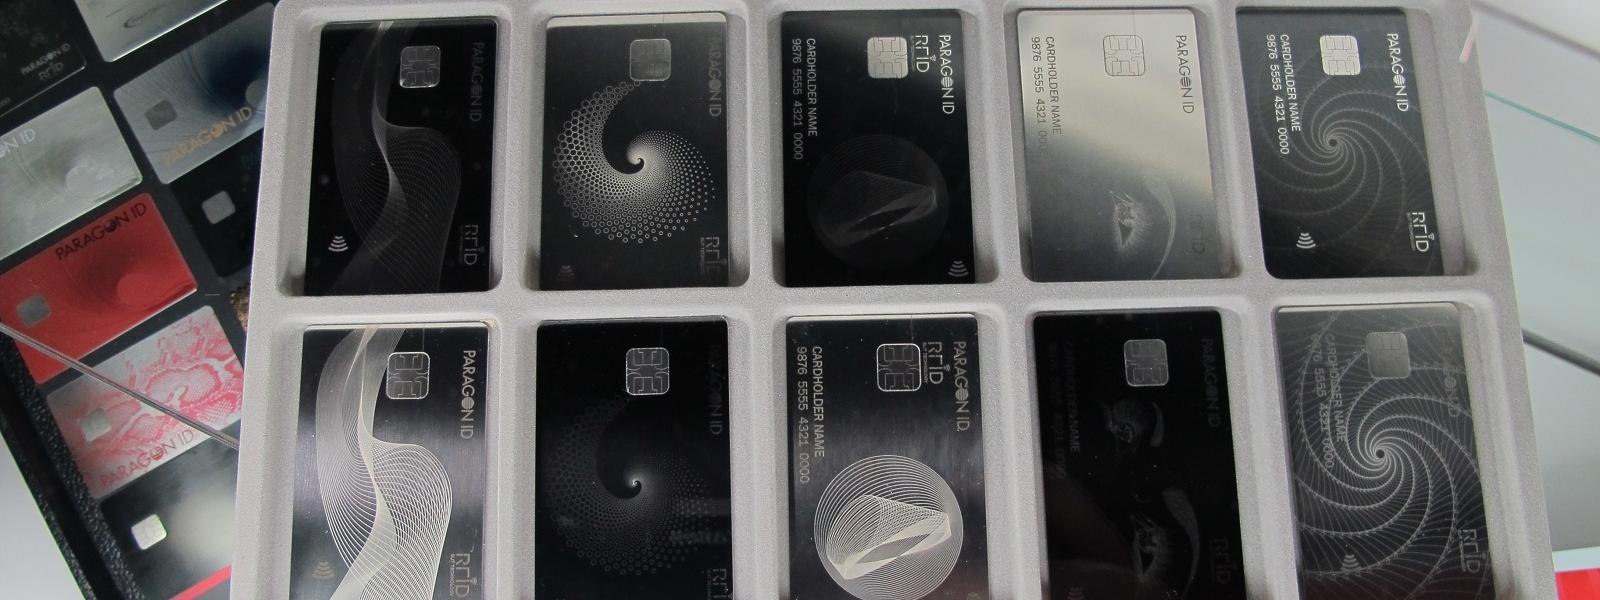 revolutionary metal bank cards